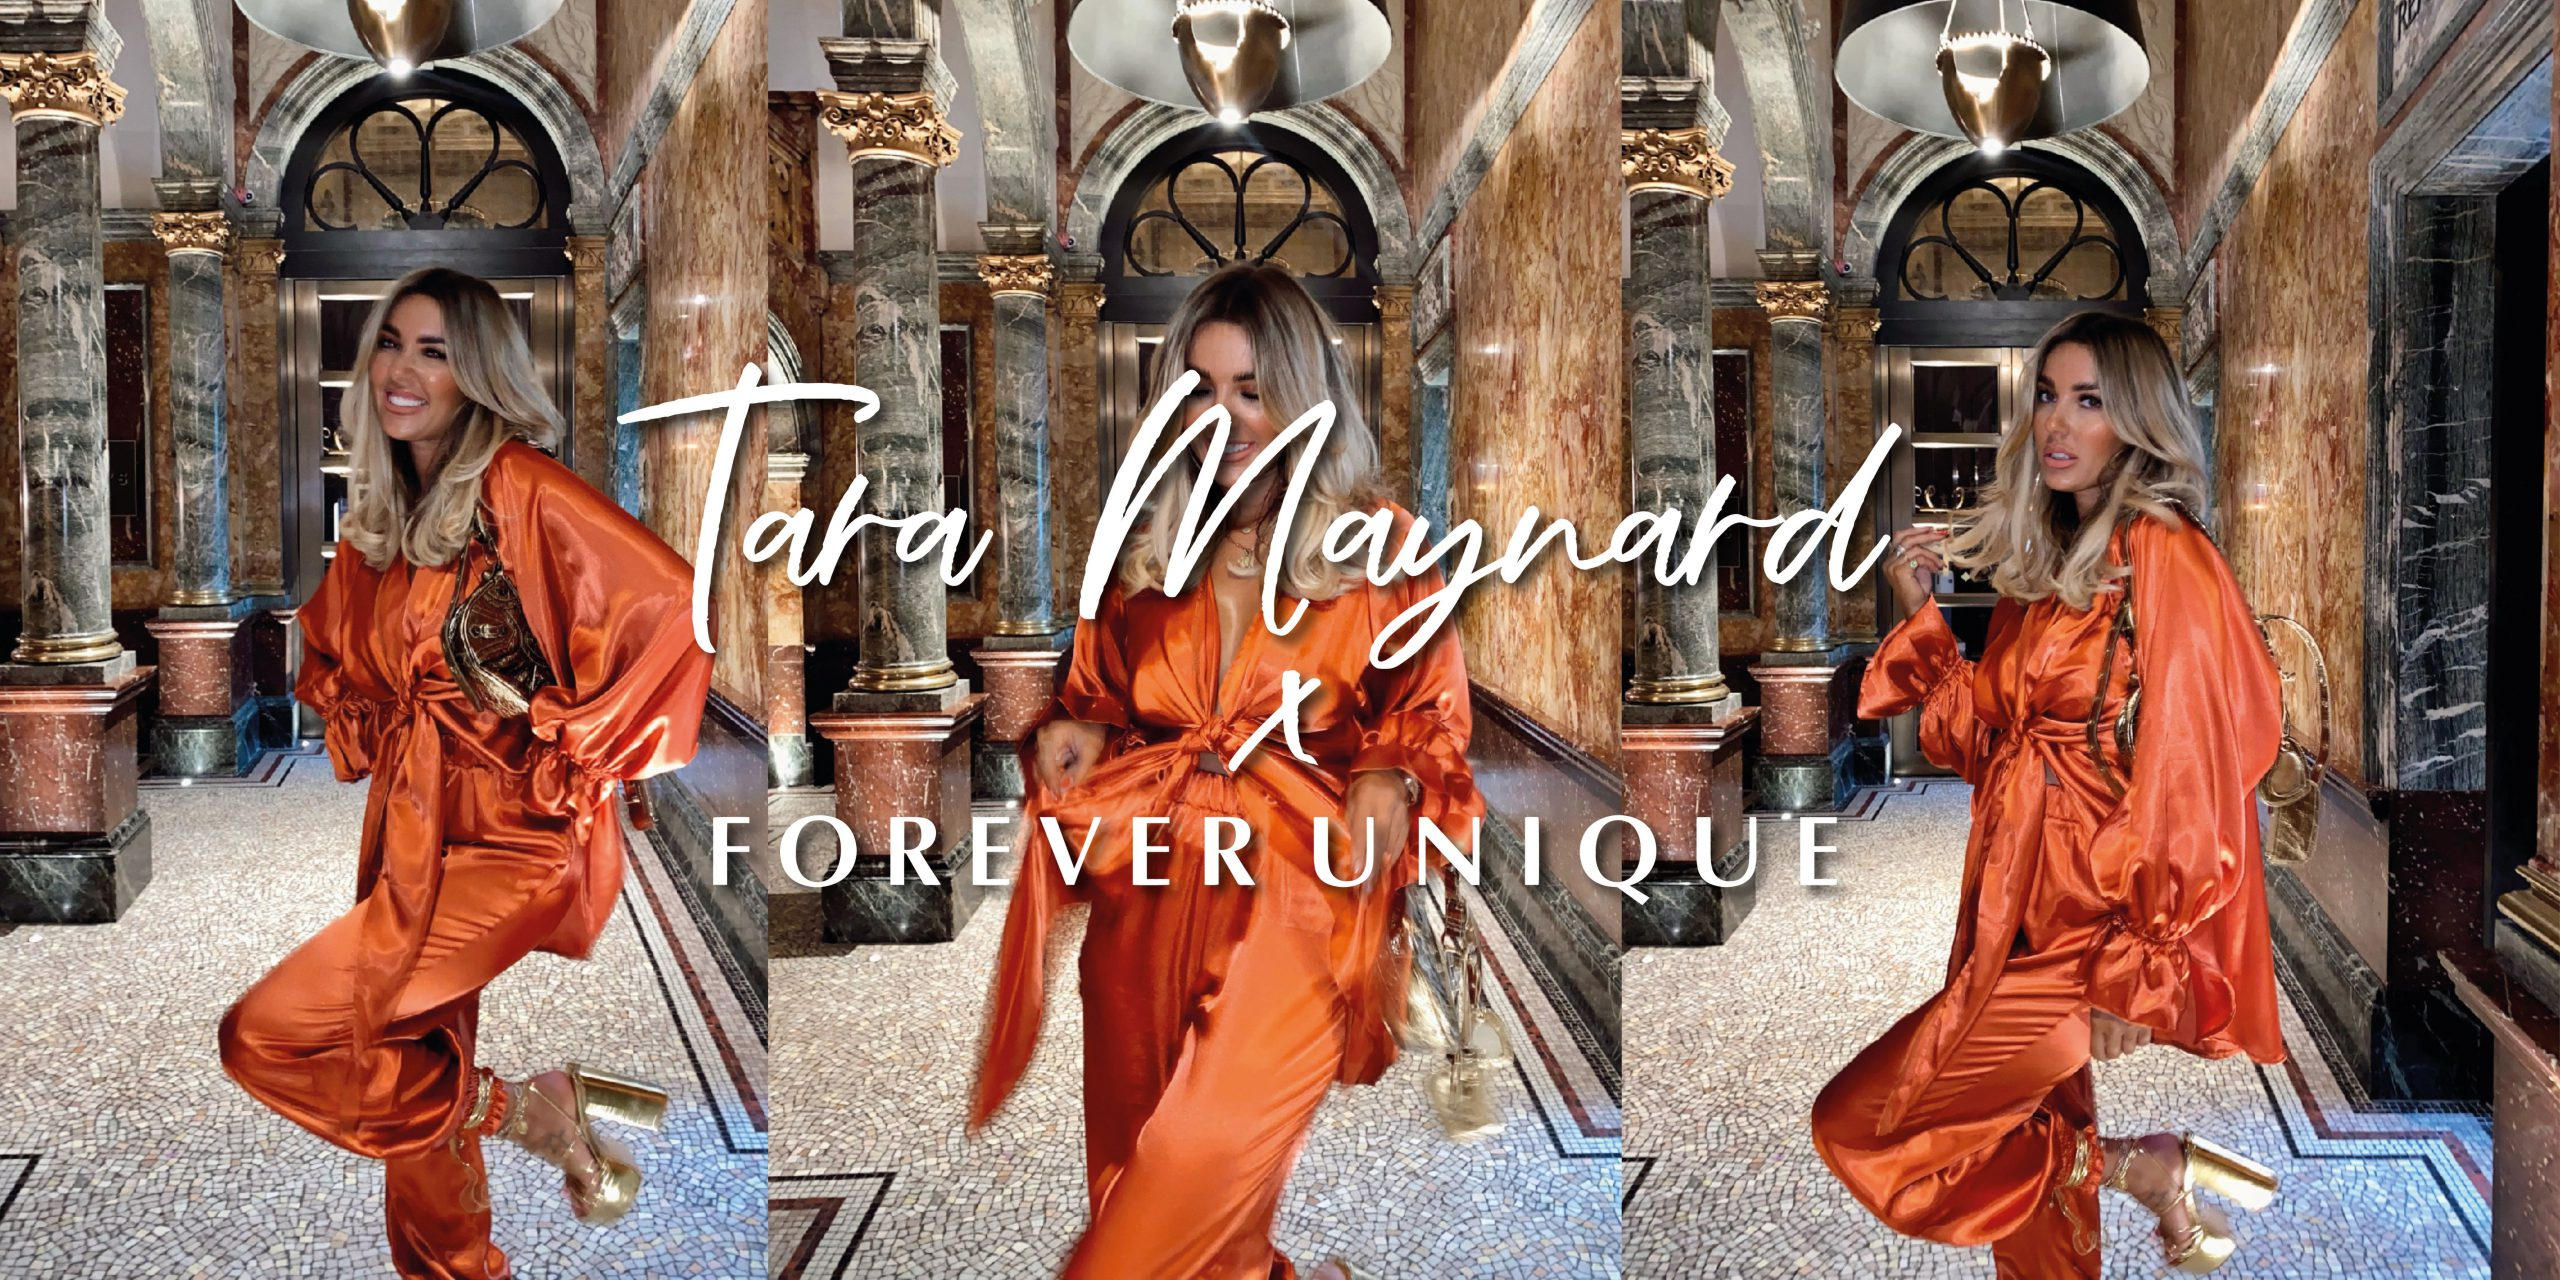 Forever Unique launches new Autumn Winter collection with Influencer Tara Maynard